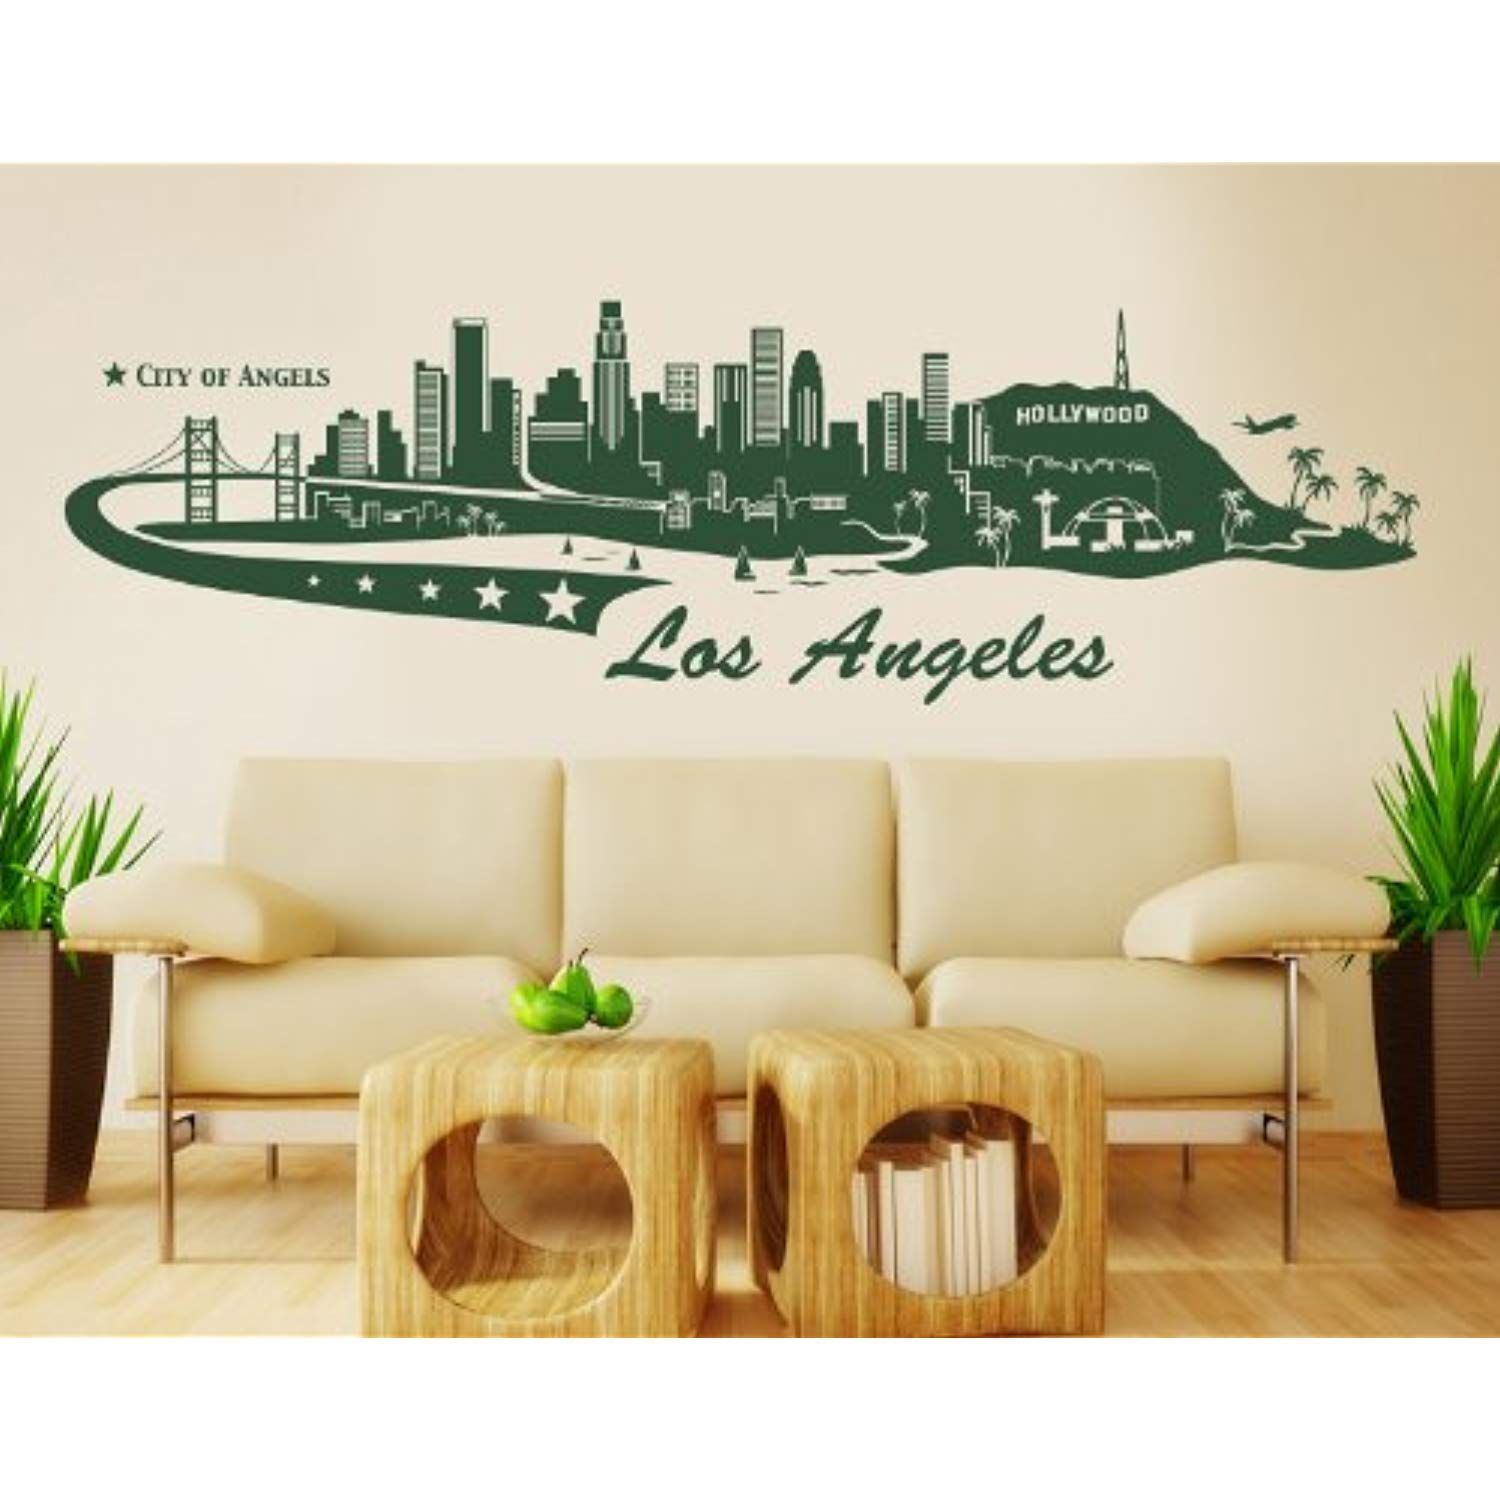 Los Angeles City Skyline Wall Decal By Style Wallstickersmurals Los Angeles Skyline Wall Decals Home Decor